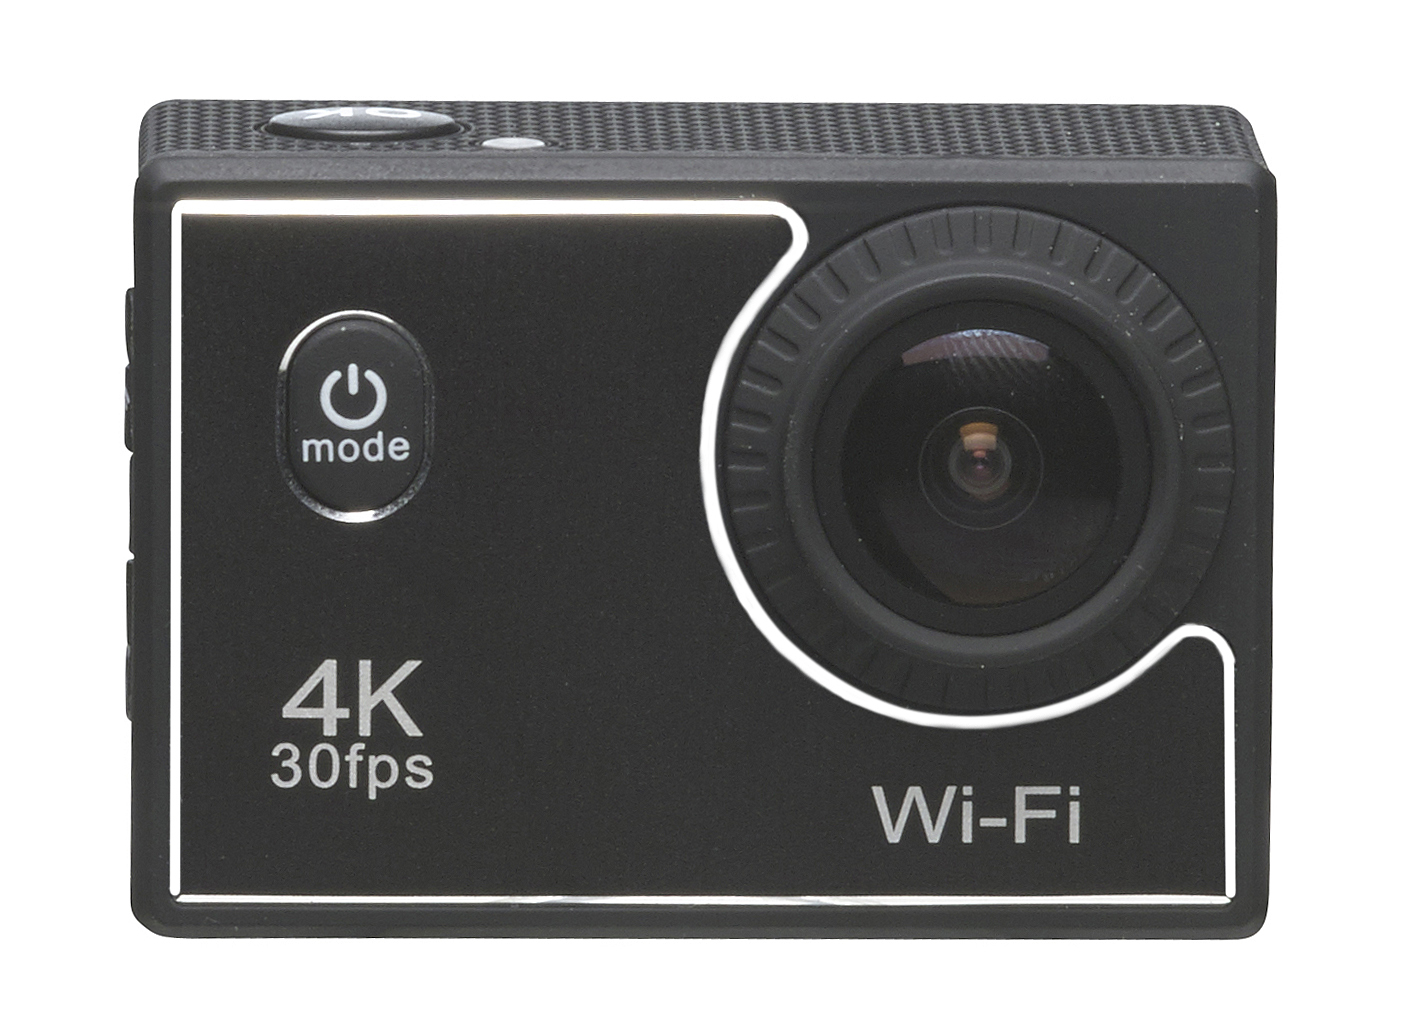 DENVER ELECTRONICS ACK-8058W 16MP 4K ULTRA HD CMOS WI-FI ACTION SPORTS CAMERA